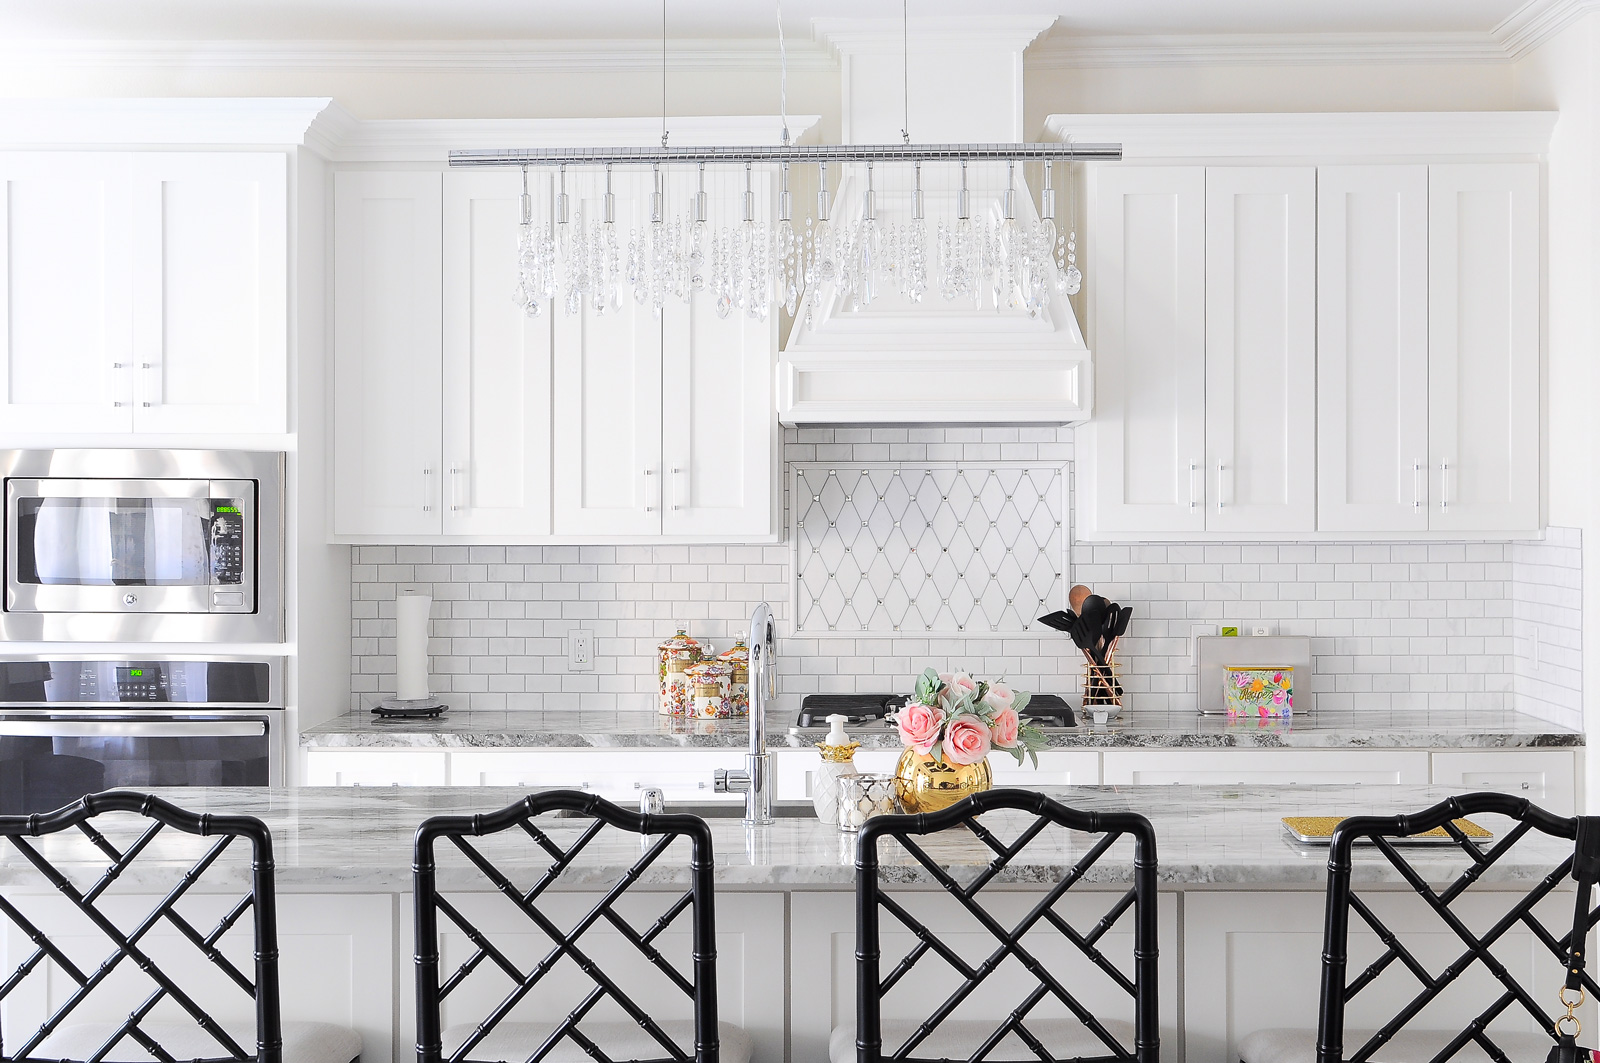 This white shaker kitchen is chic, bright and gorgeous when paired with the black dayna stools from Ballard Designs.